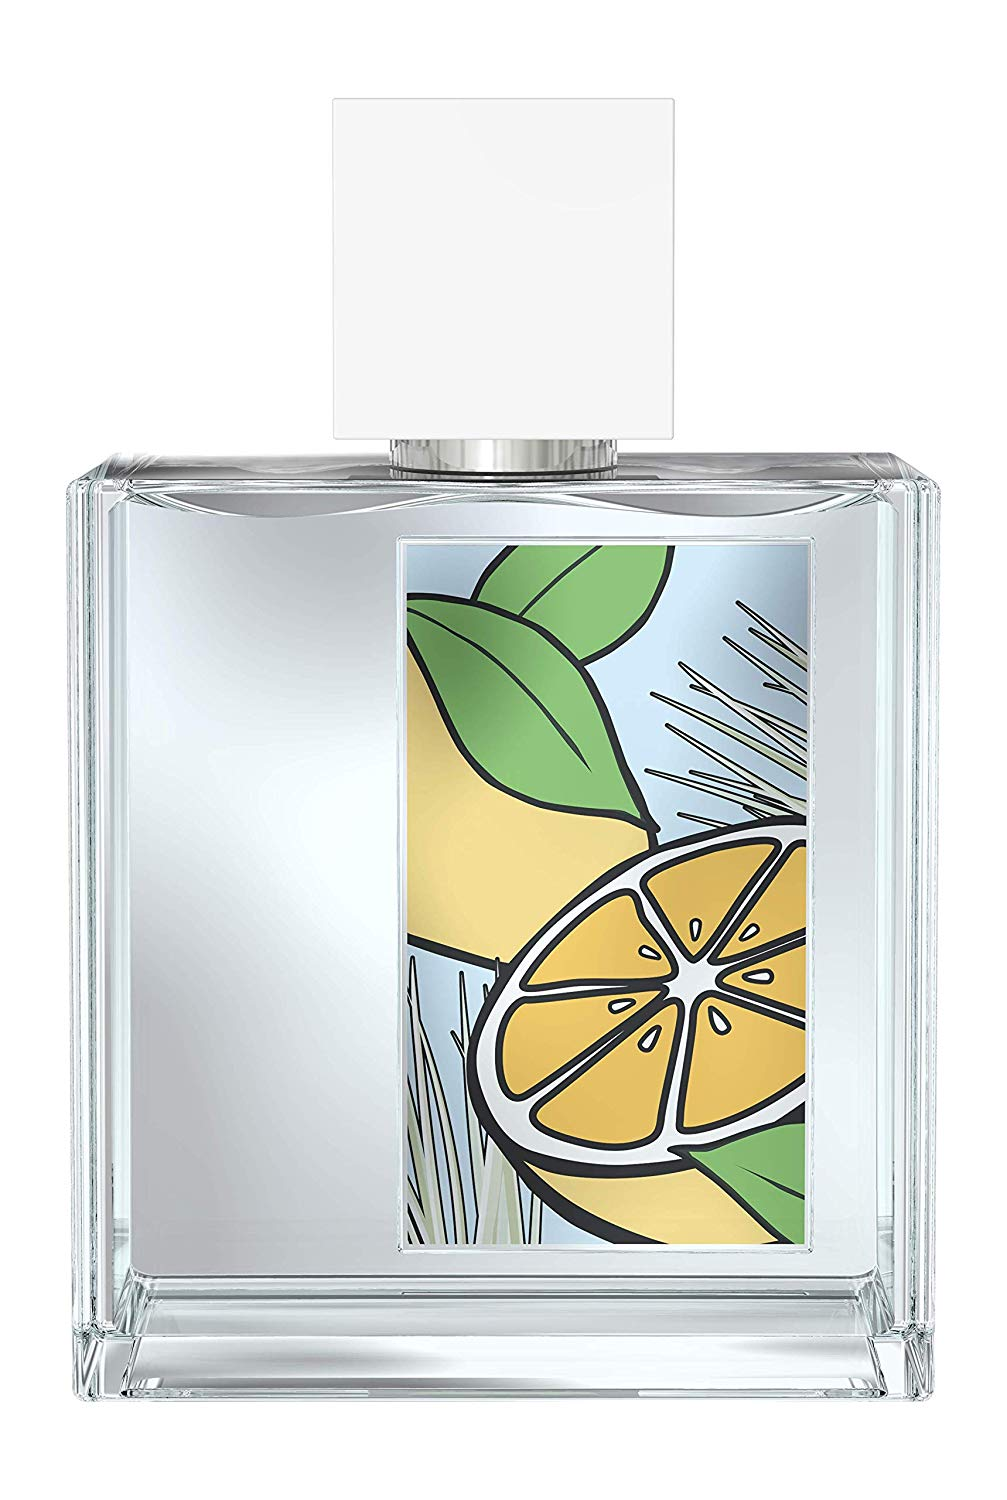 Mexx Eau de Toilette Whenever Wherever amazon